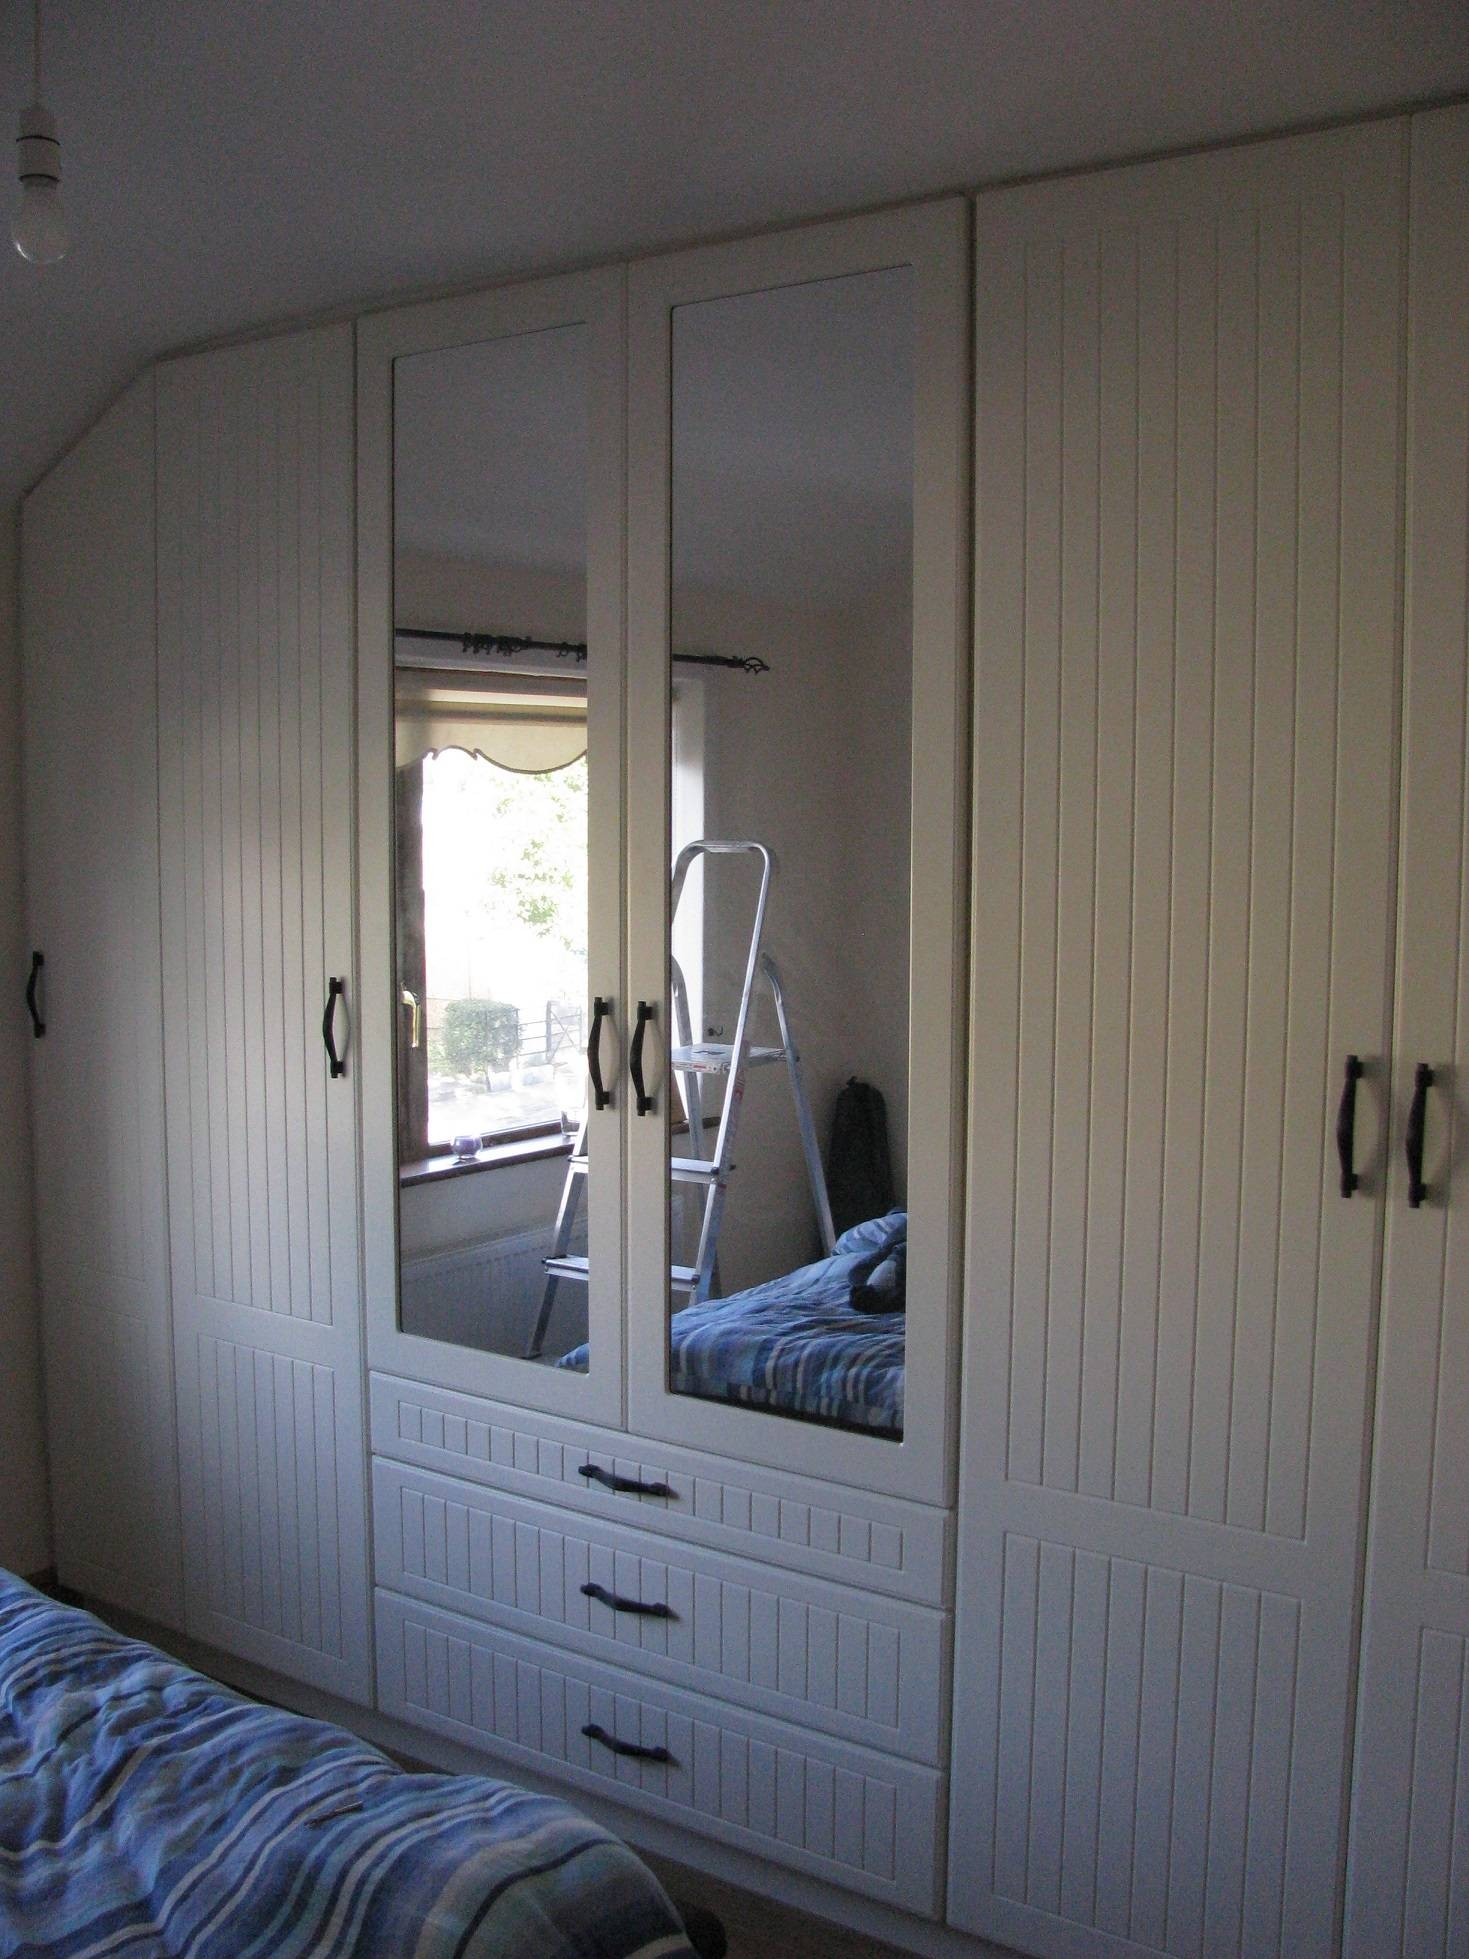 View Pictures And Photos For Brian Glynn Carpentry Based Innbsp throughout Country Style Wardrobes (Image 12 of 15)